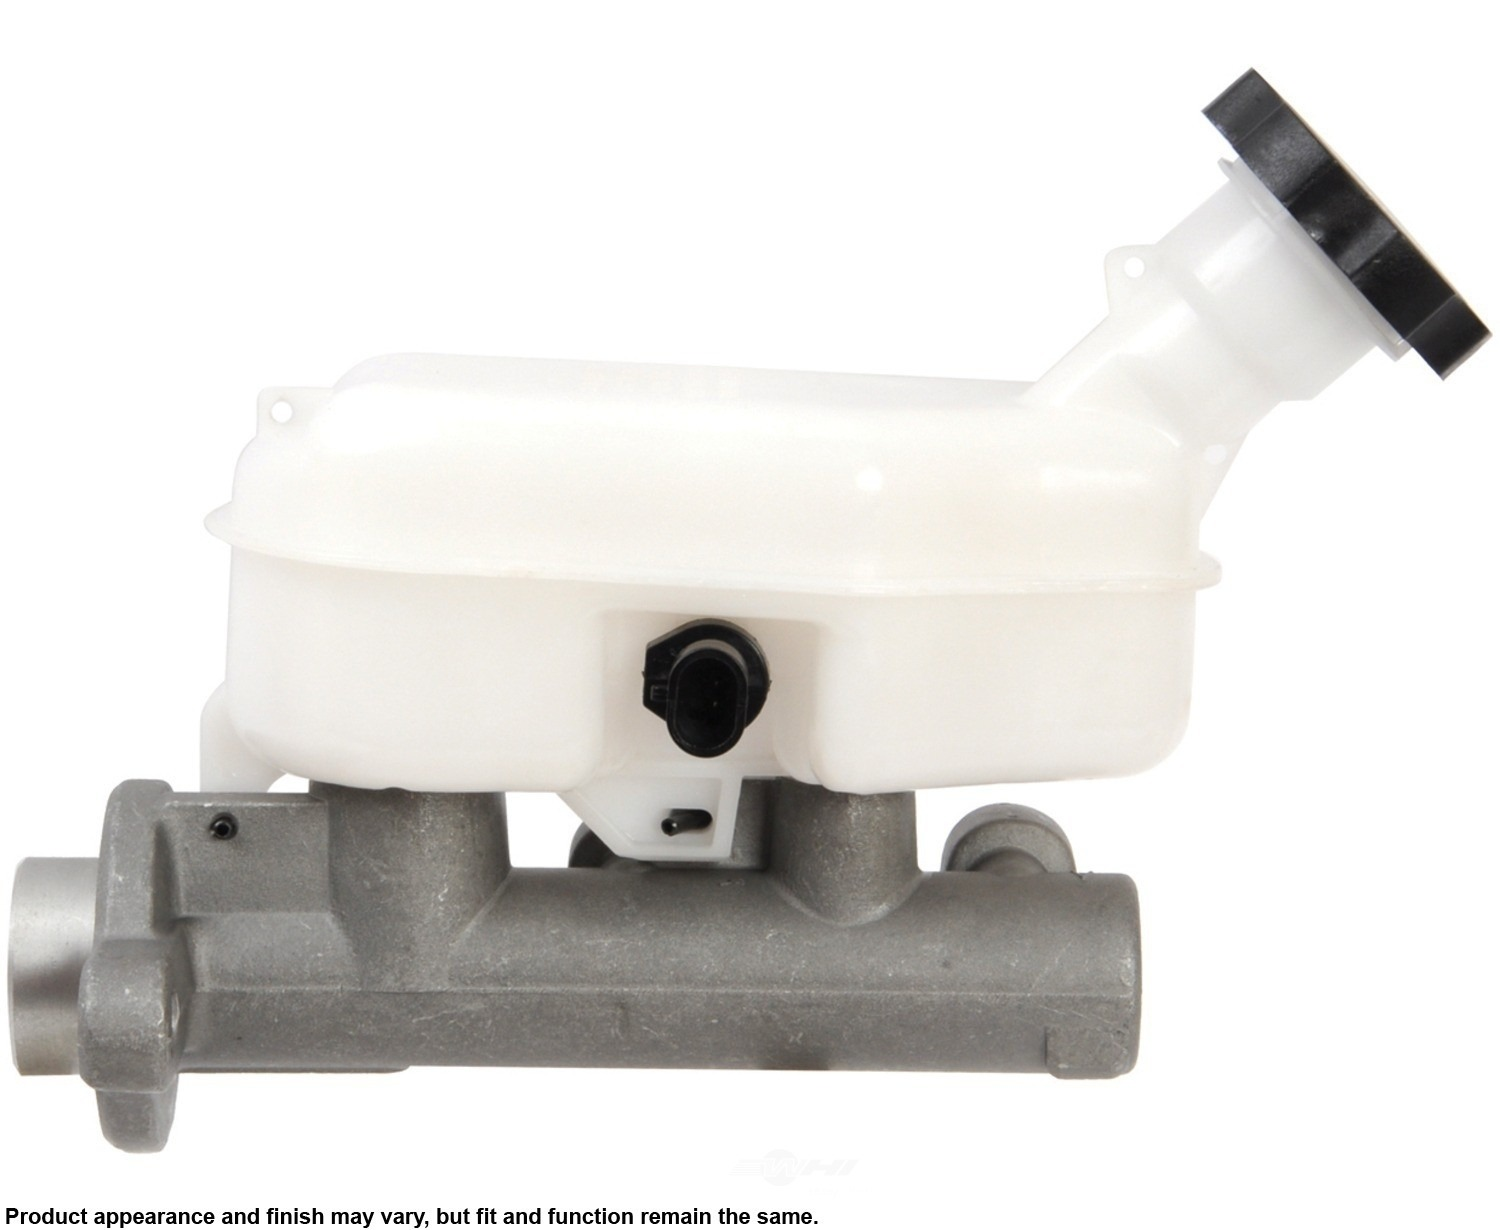 CARDONE NEW - Master Cylinder - A1S 13-3104